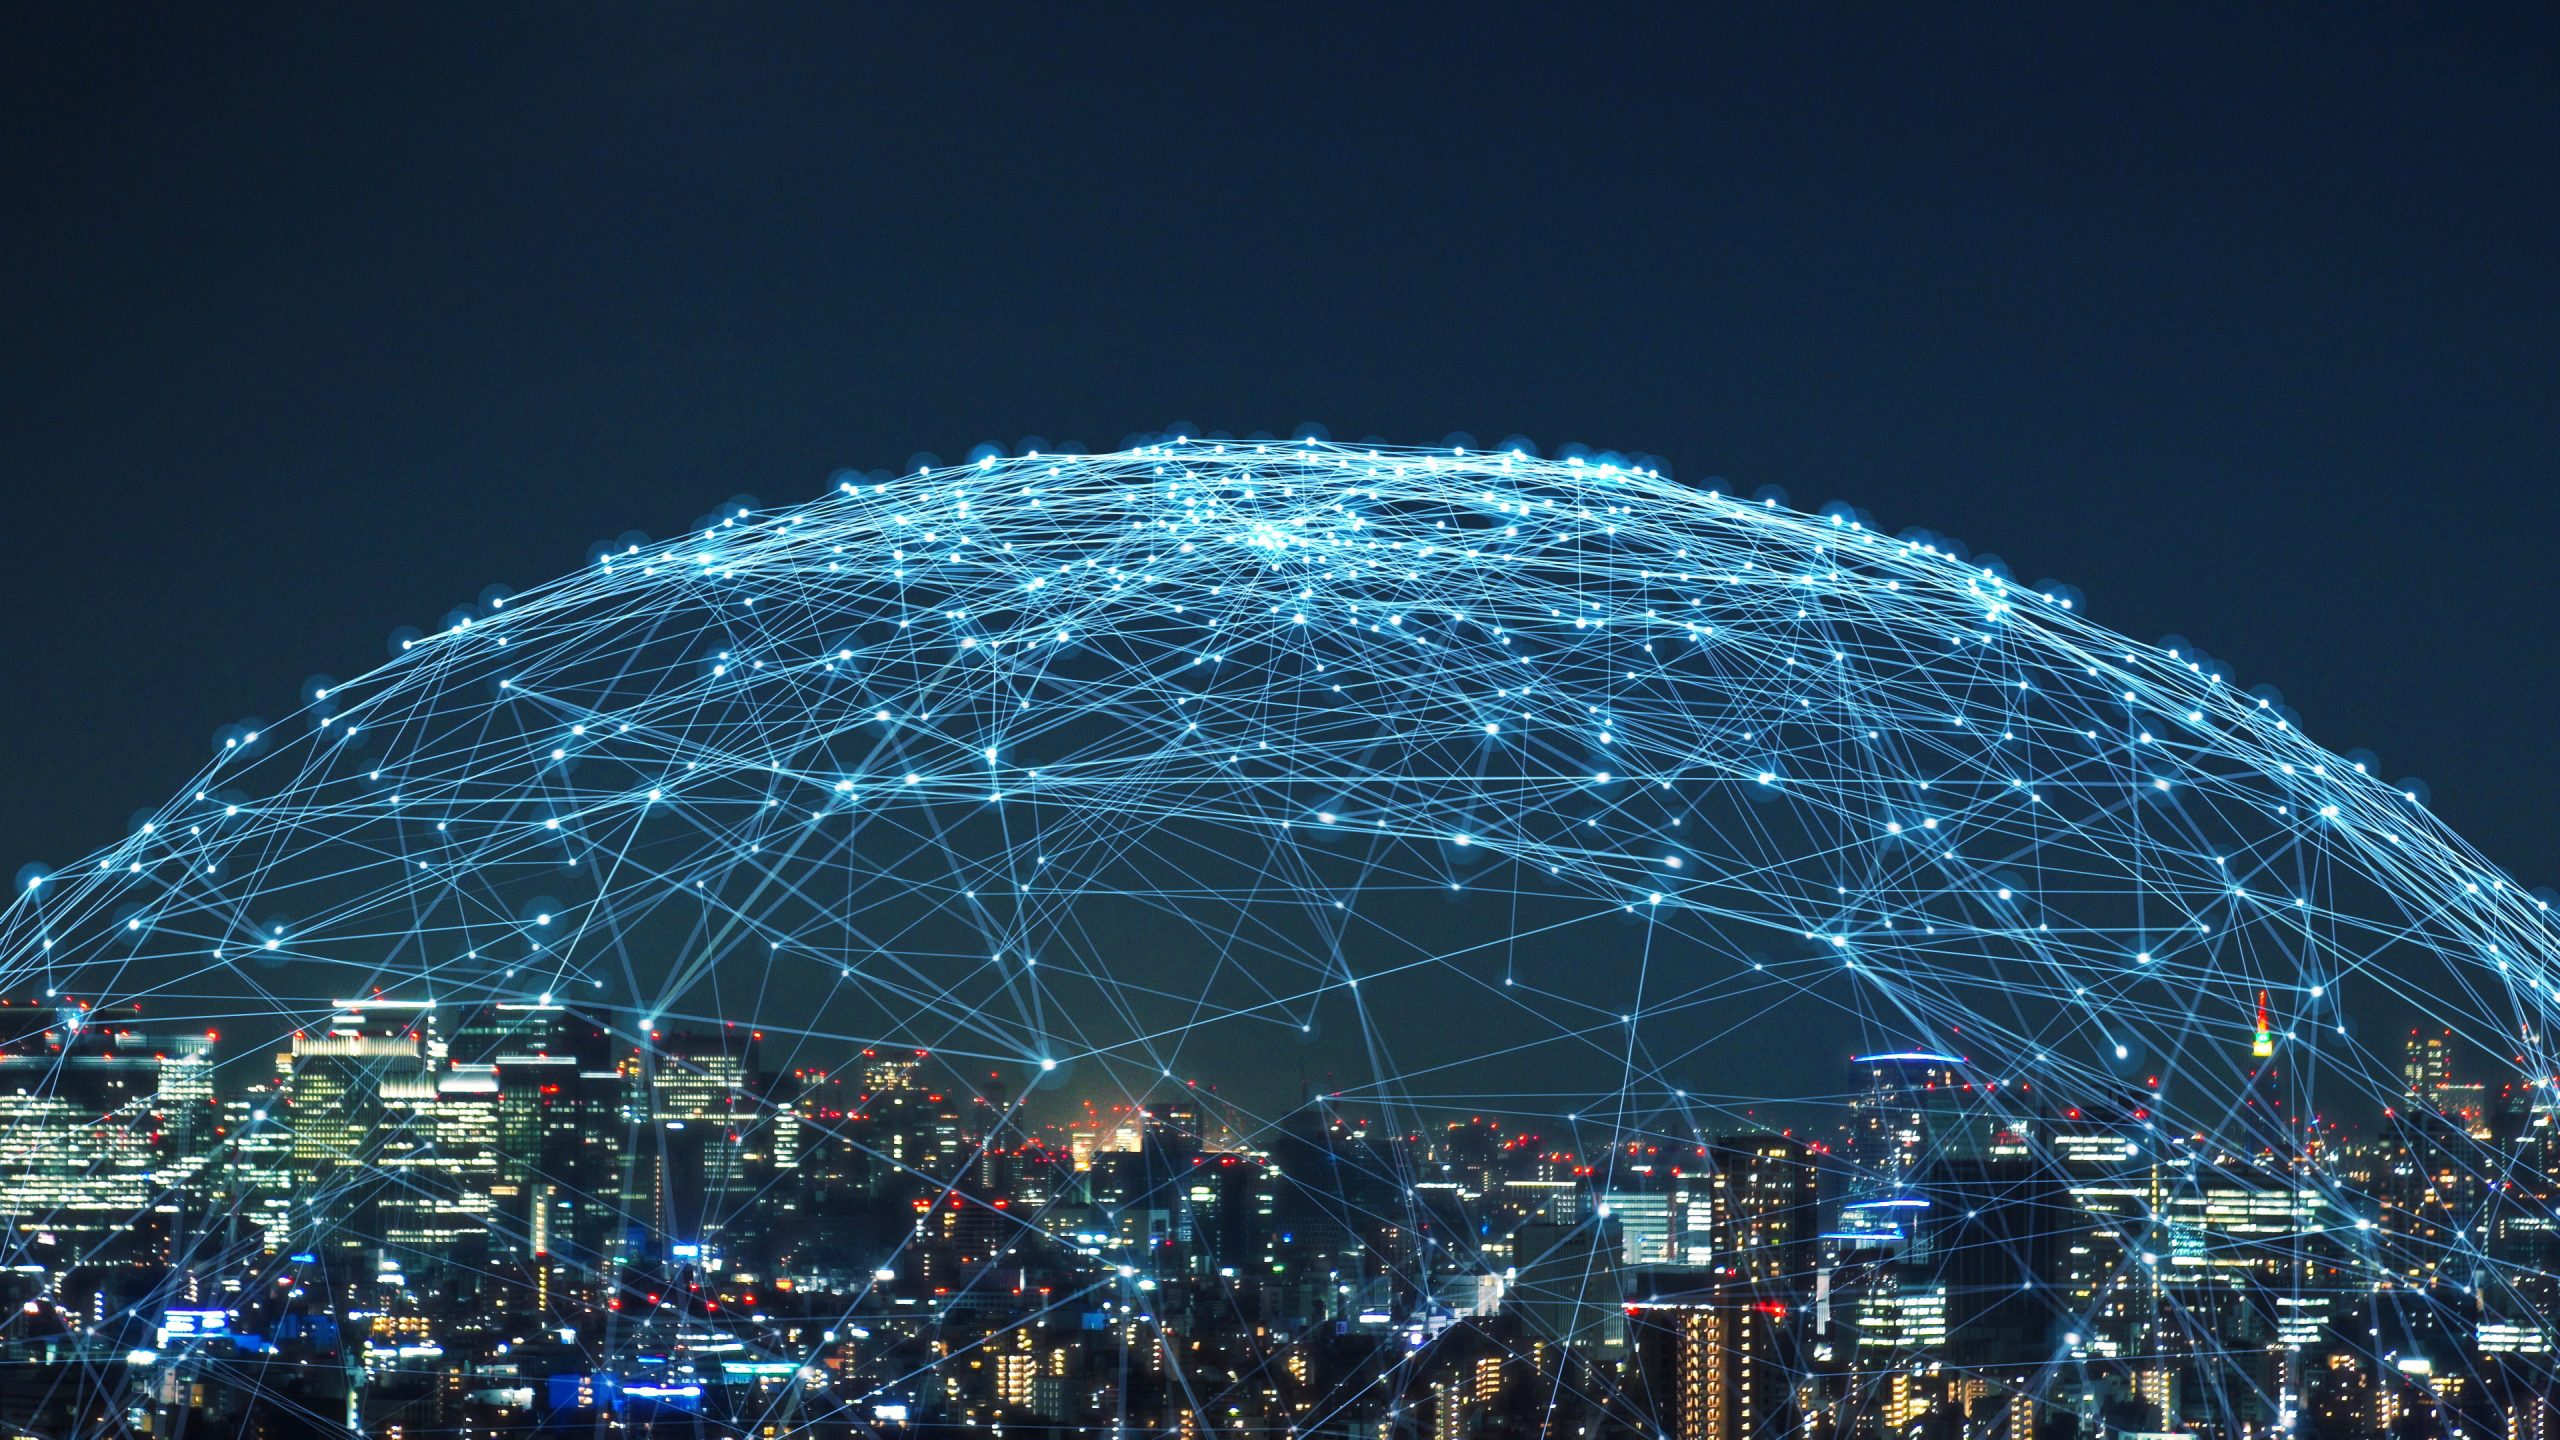 """There has never been more """"things"""" in the ever-expanding Internet of Things (IoT) ecosystem. Moving forward, having a way to manage and regulate this new IoT ecosystem while having a comprehensive IoT managed services strategy will be key for businesses."""